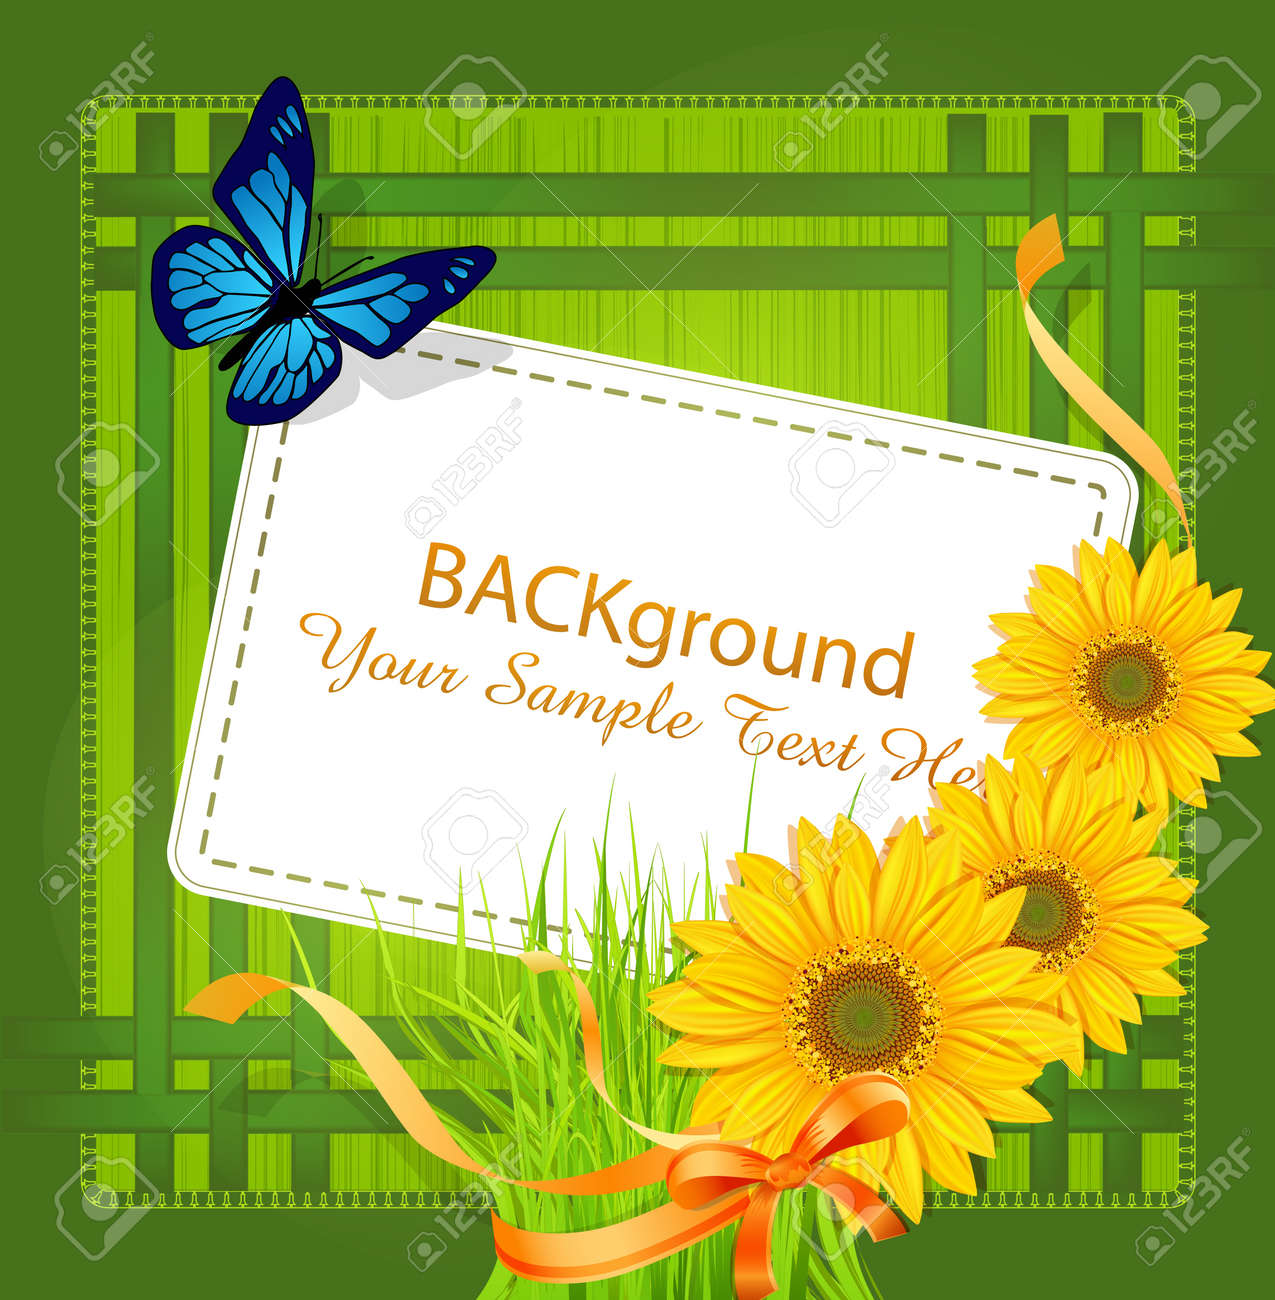 vector green background, with Sunflowers ribbons, bow and greeting card Stock Vector - 9306850